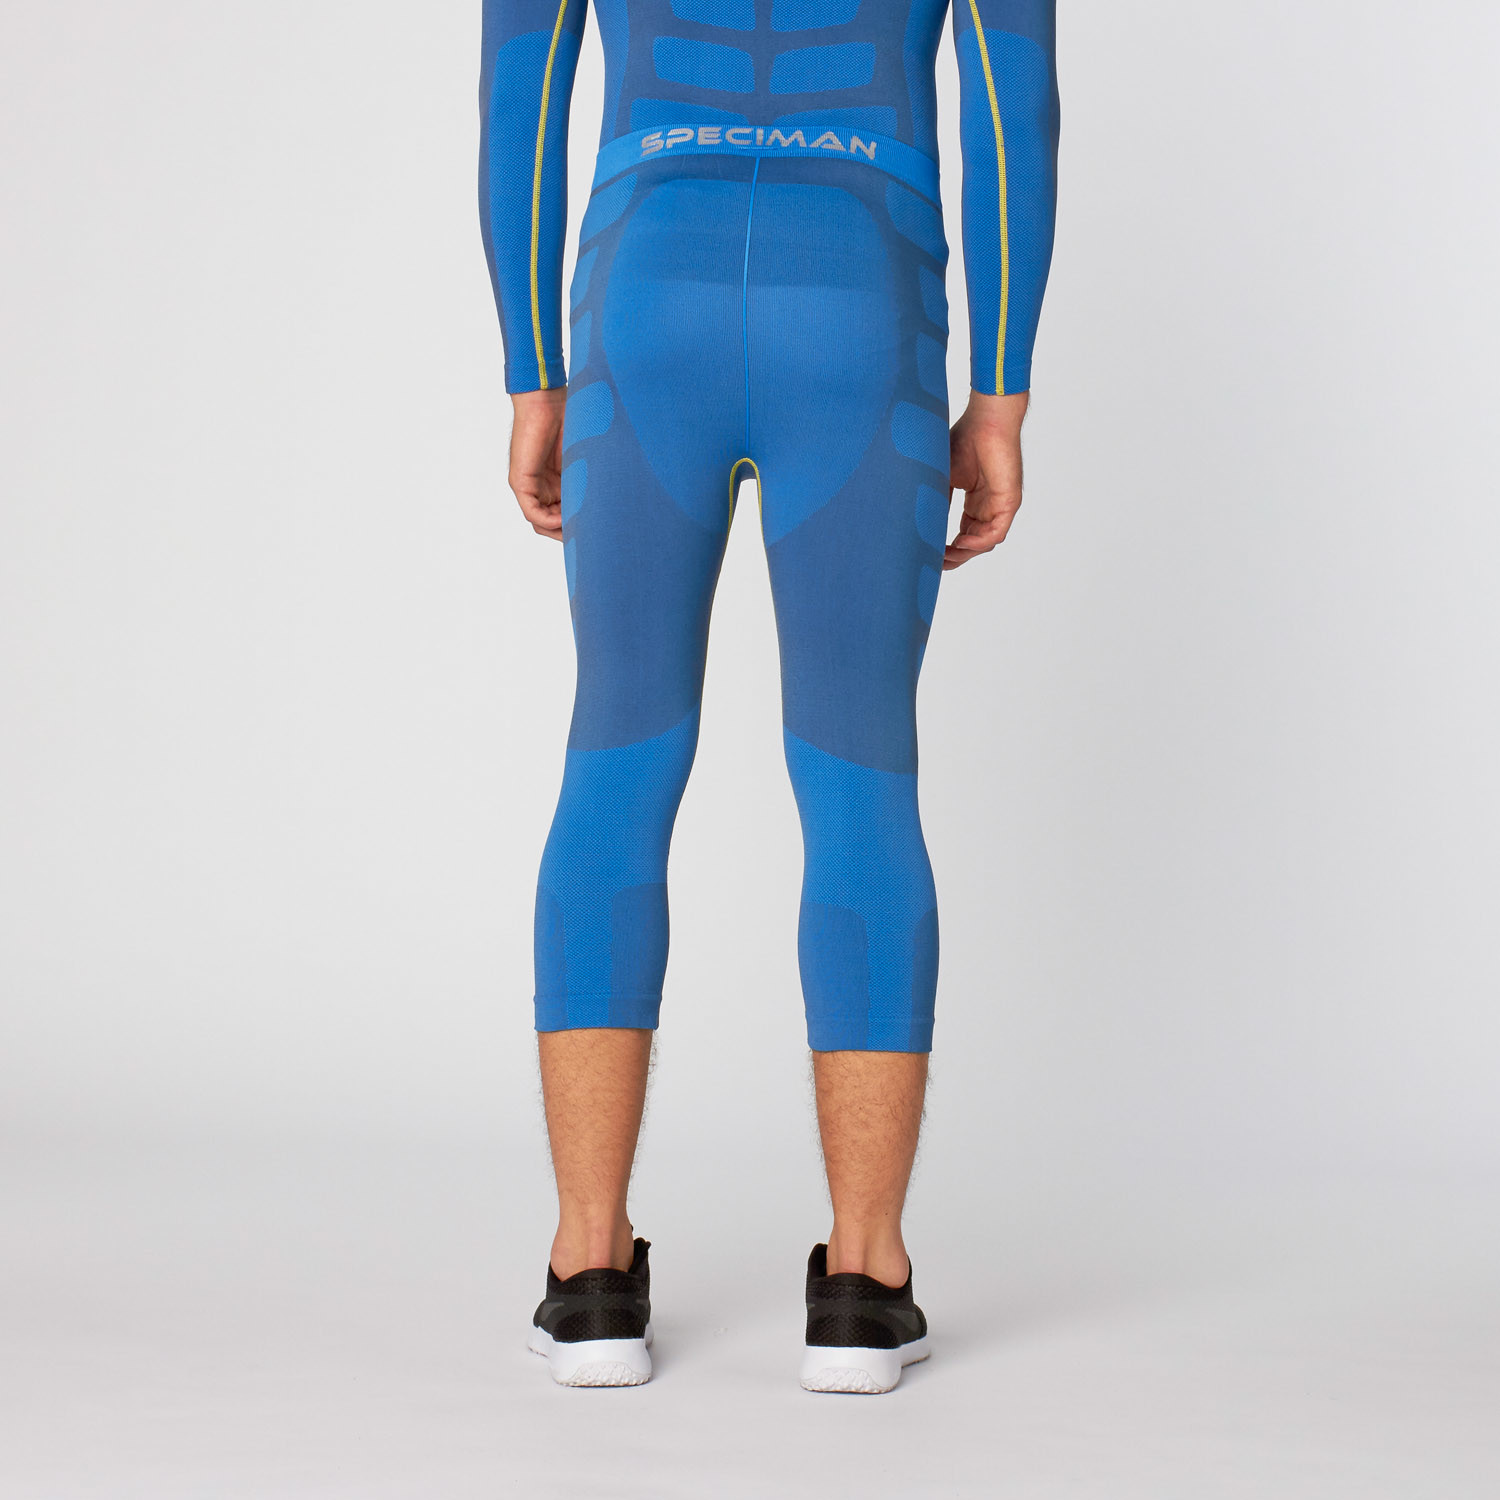 Shop the largest selection of Surf & Swim Leggings at the web's most popular swim shop. Free Shipping on $49+. Low Price Guarantee. + Brands. 24/7 Customer Service.